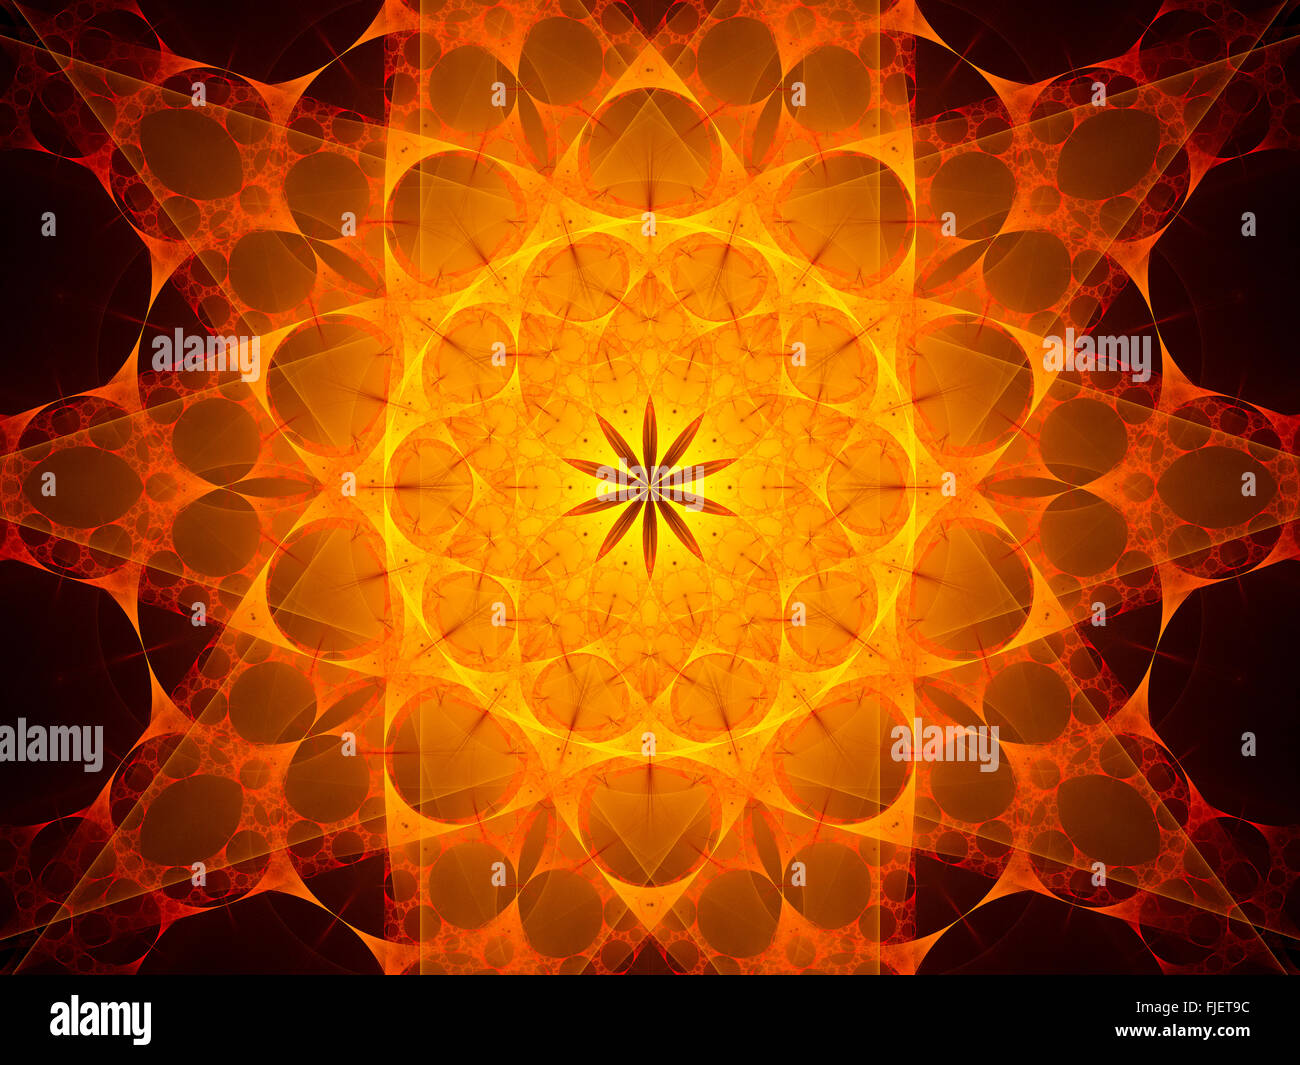 Fiery glowing mandala in space, computer generated abstract background Stock Photo